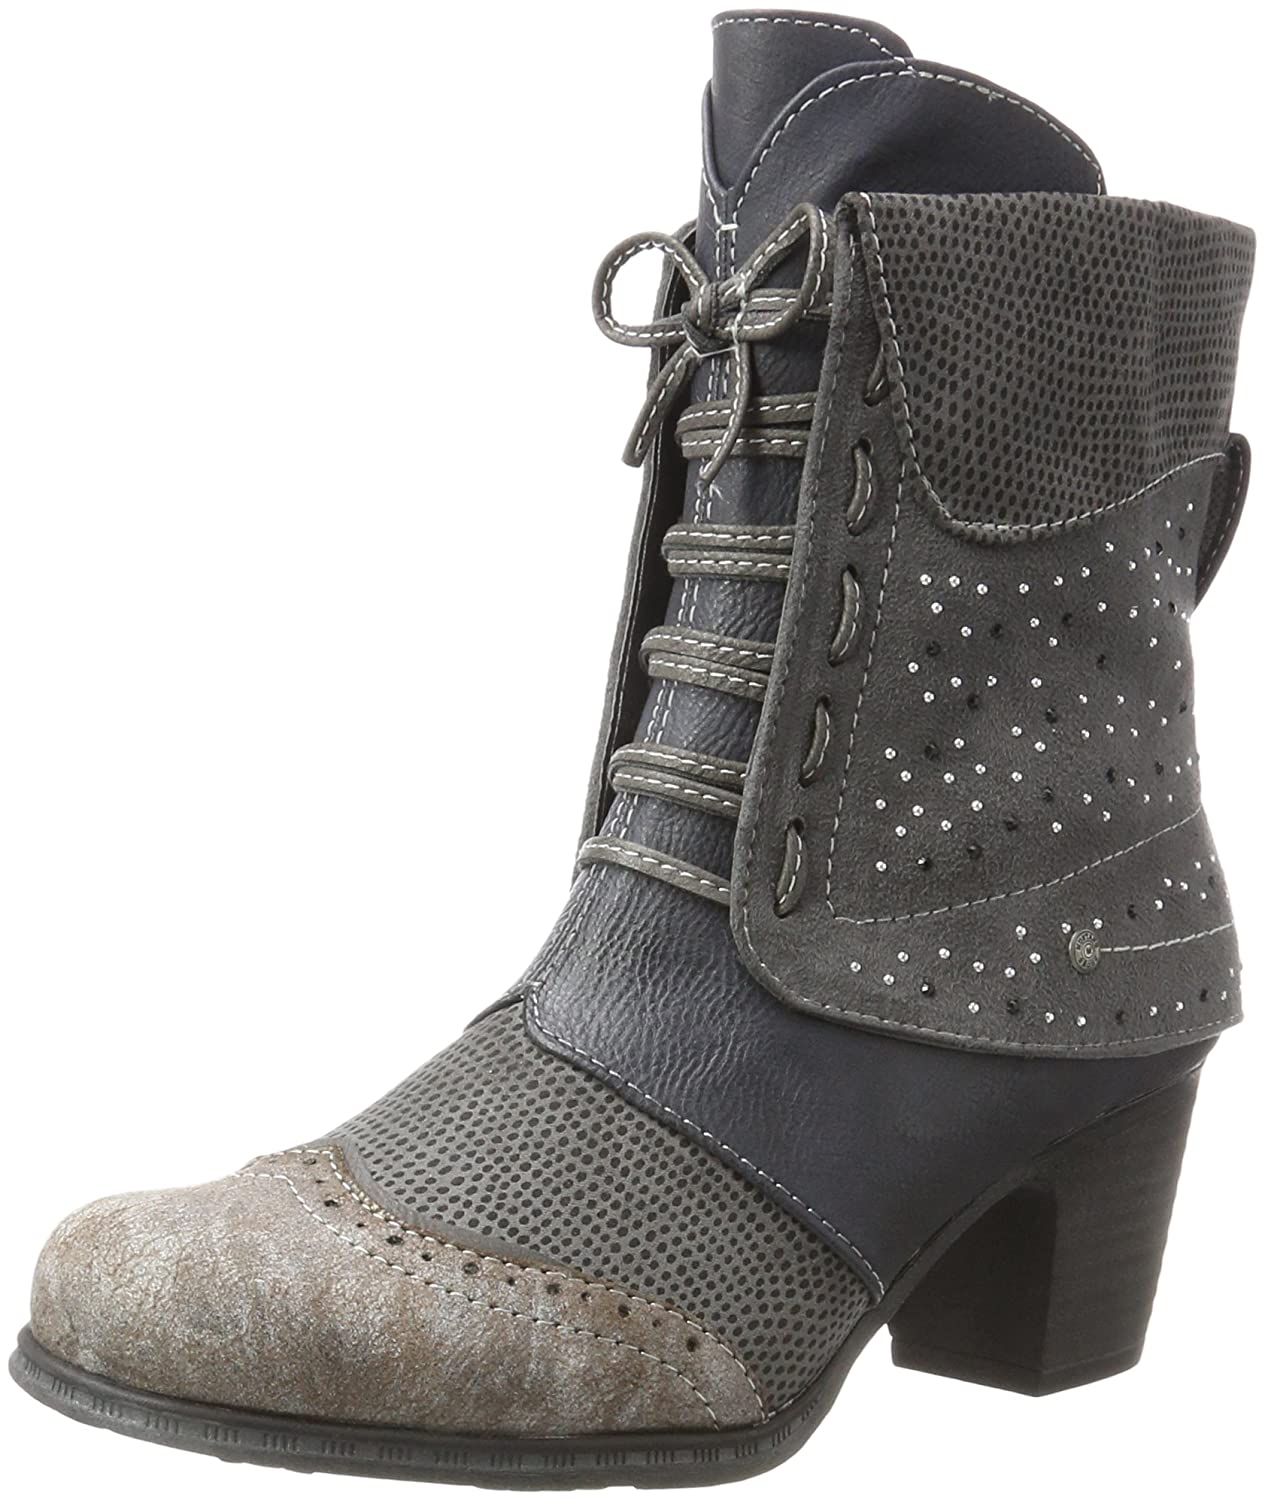 Mustang 1258-502-869, Mustang Bottes Femme Multicolore Grau) (Navy/ Femme Grau) 5cf06e7 - conorscully.space